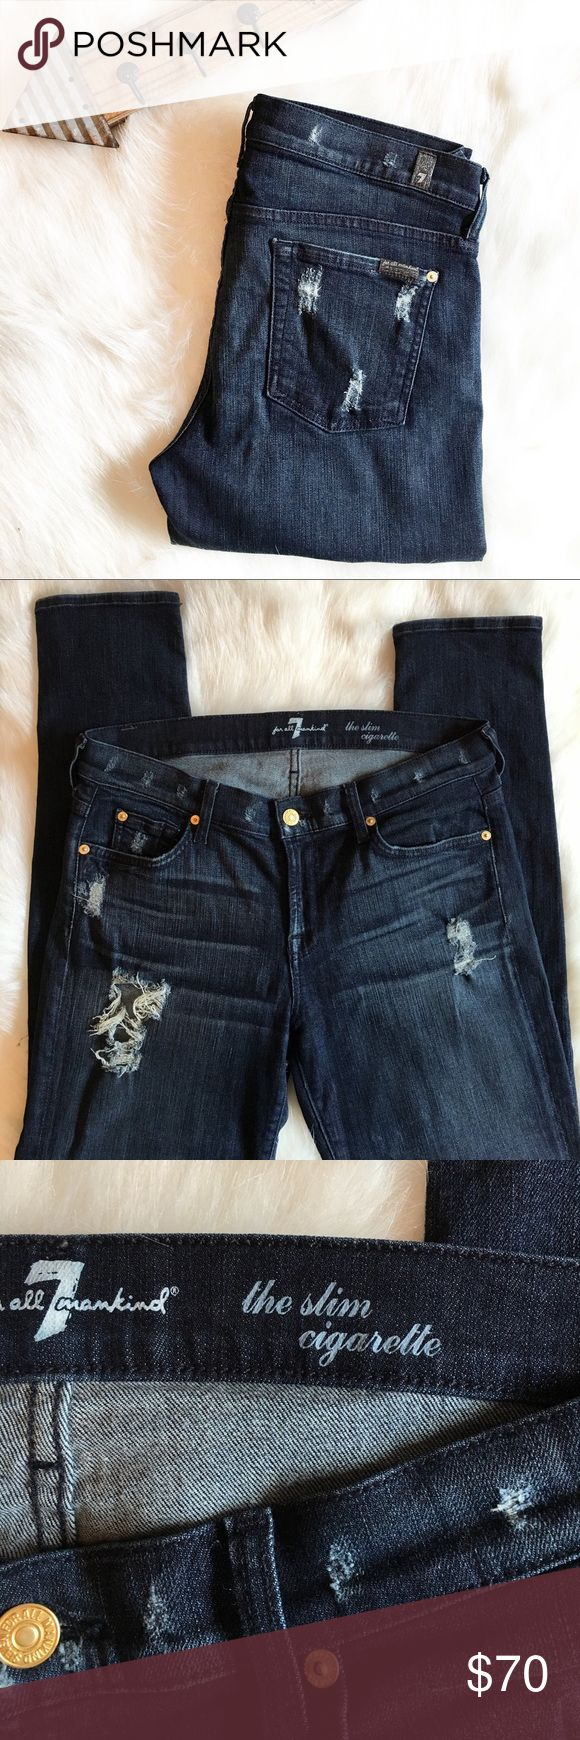 """7 FOR ALL MANKIND """"the slim cigarette jeans 7 for all mankind the slim cigarette jeans. Size 30. Length is 40 inches. Inseam is 30 inches. 7 For All Mankind Jeans Straight Leg"""